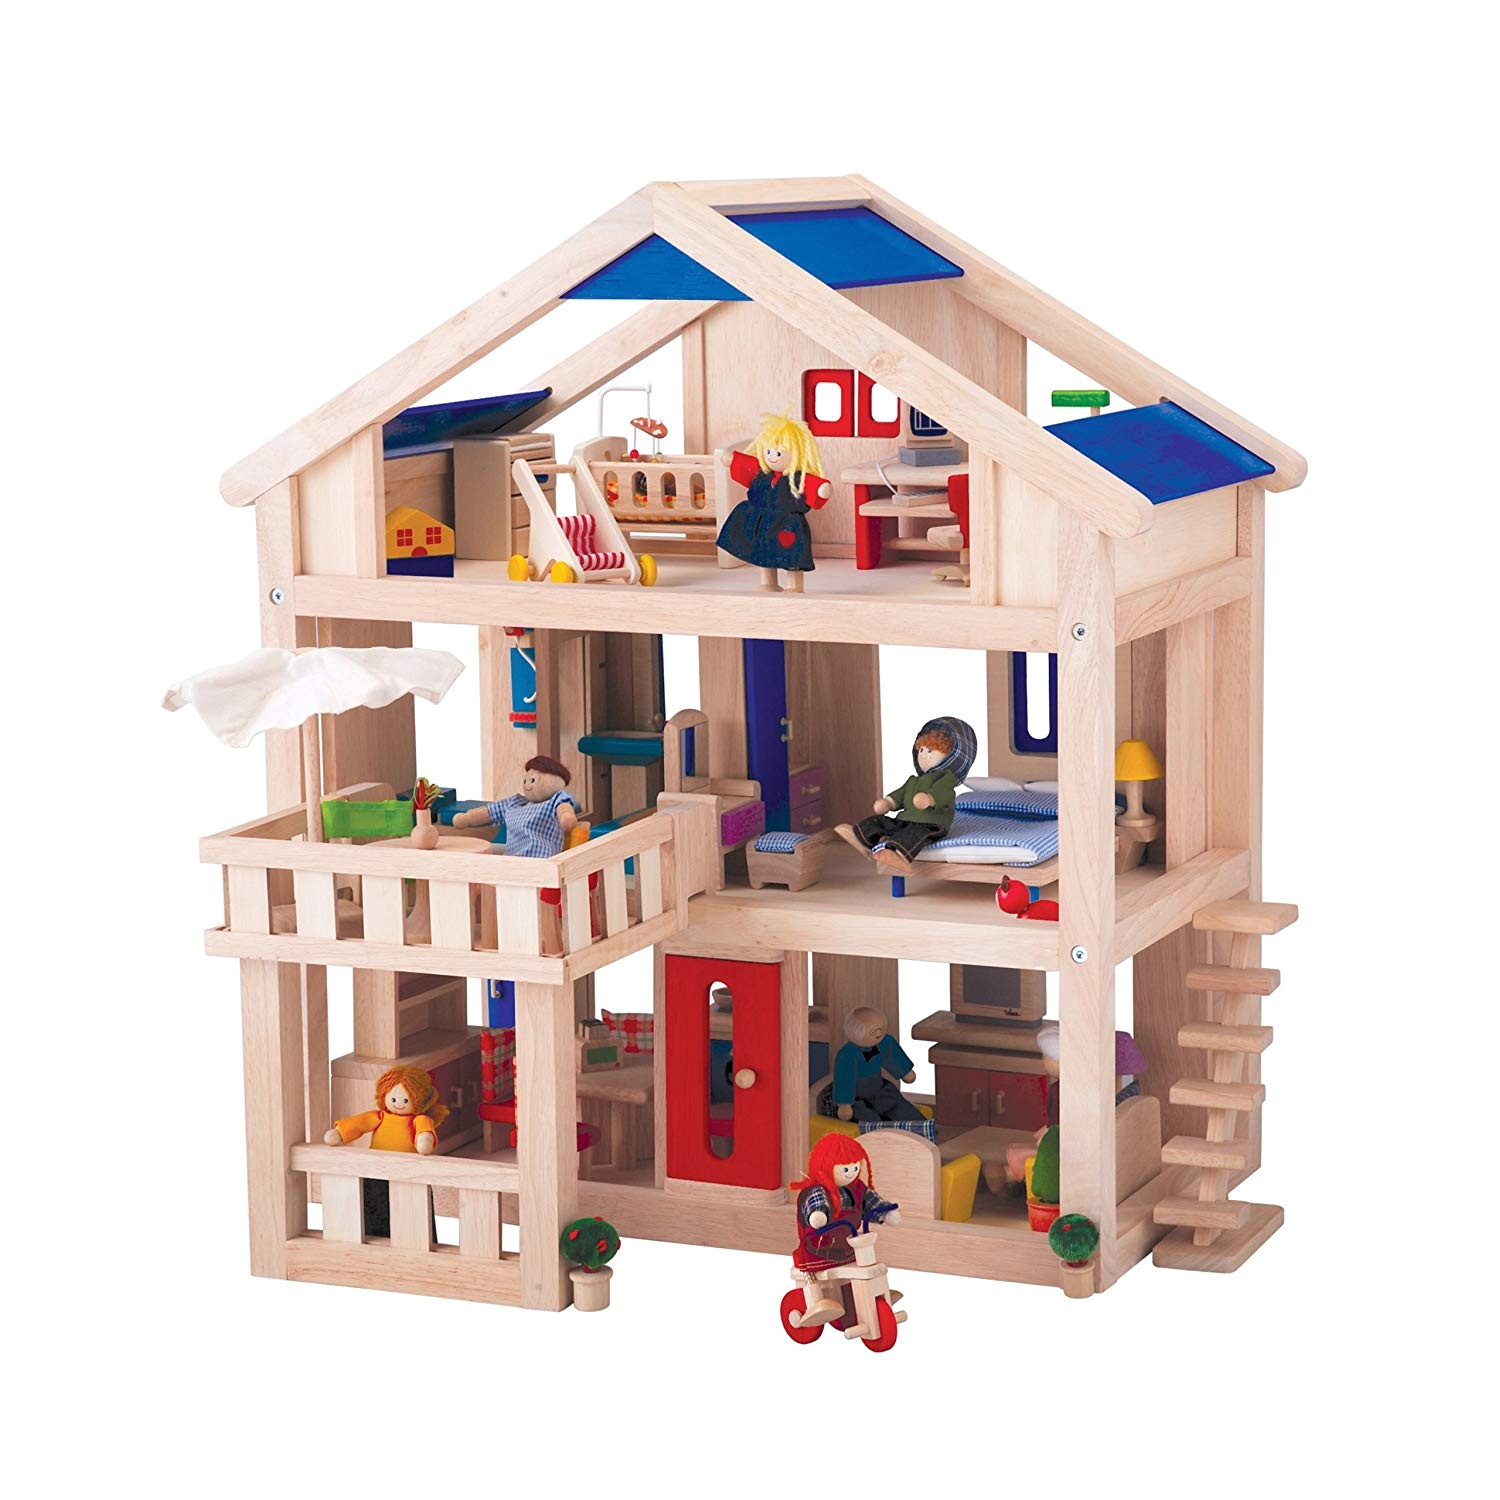 Plan toys Doll Houses 20 Amazing Doll Houses